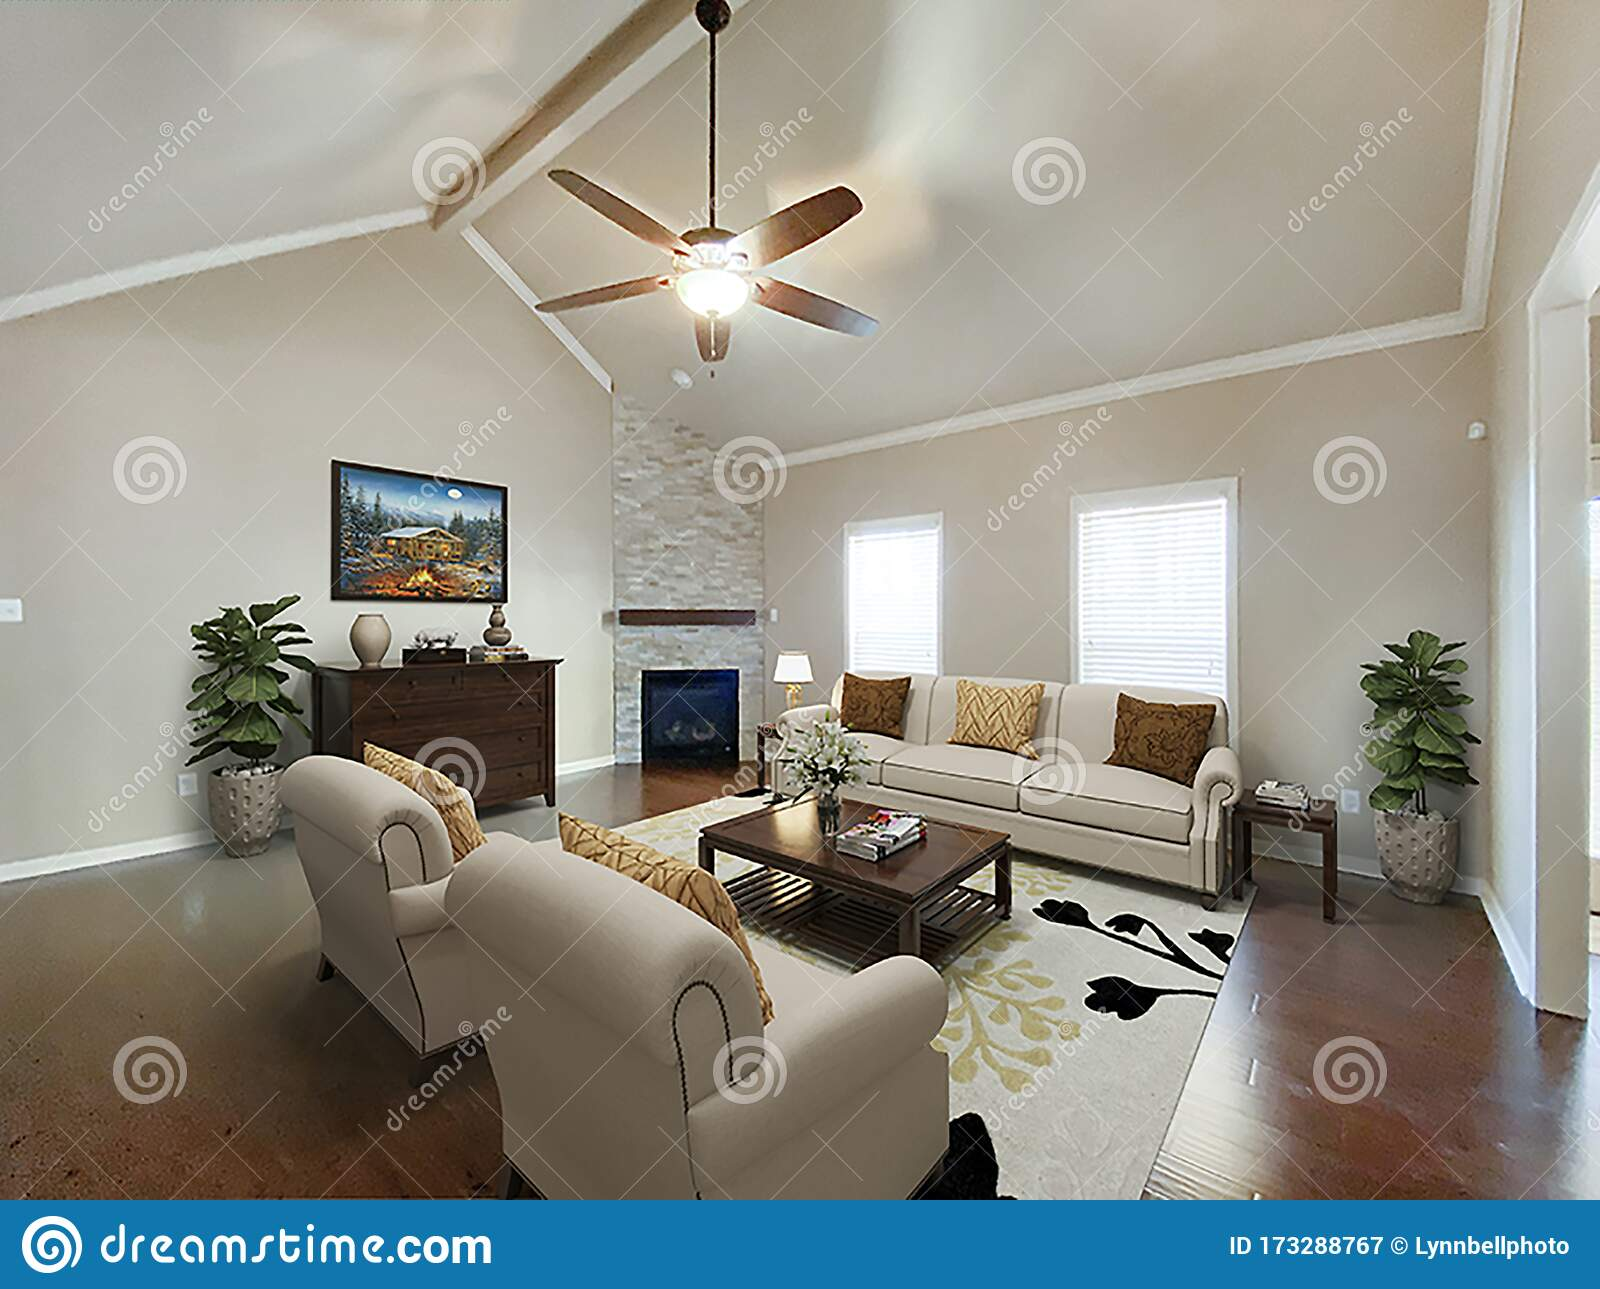 Furnished Living Room With Vaulted Ceiling Stock Image Image Of Fireplace Idea 173288767